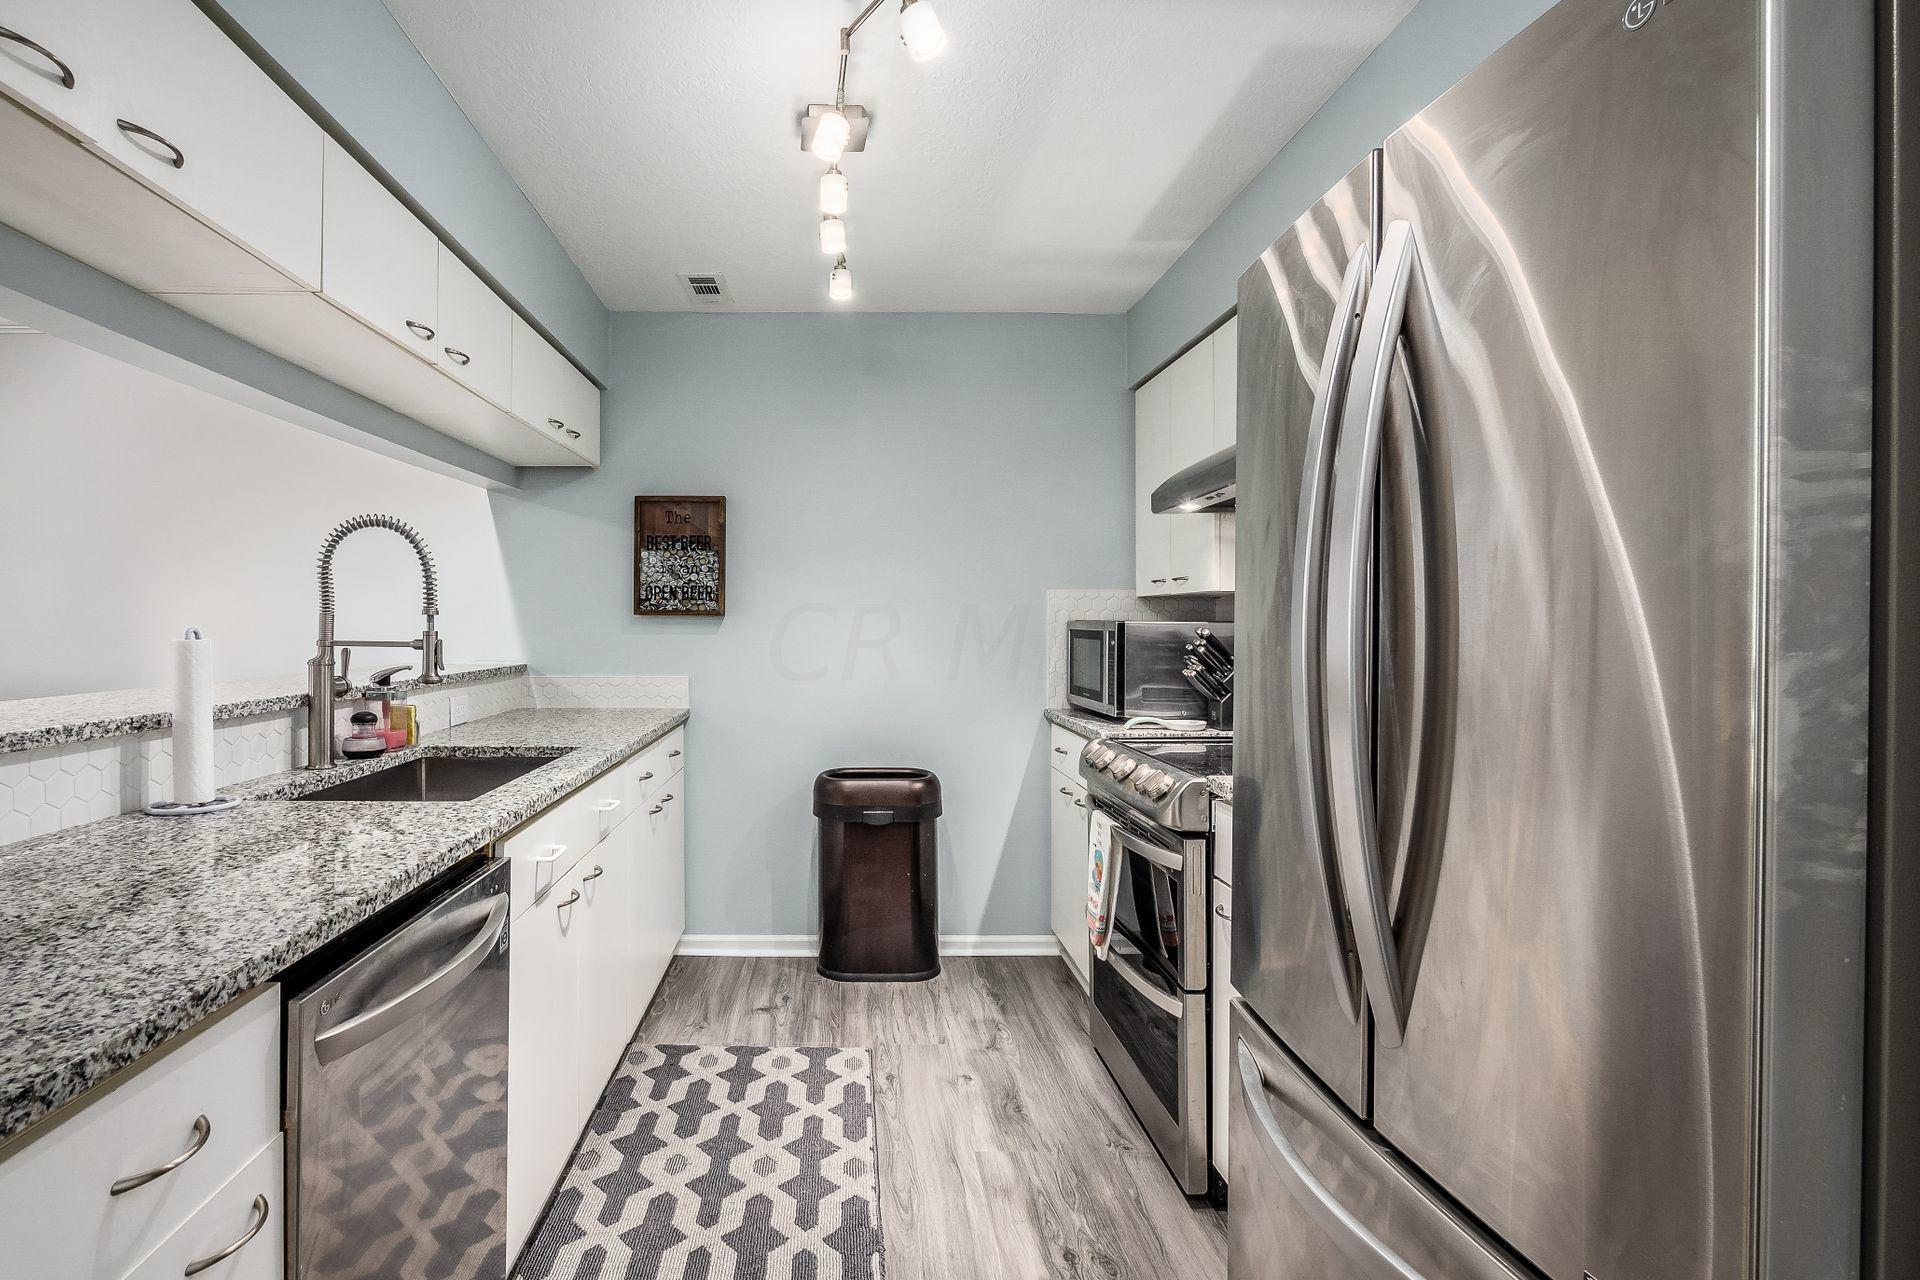 13 Lincoln Street, Columbus, Ohio 43215, 1 Bedroom Bedrooms, ,1 BathroomBathrooms,Residential,For Sale,Lincoln,221000563